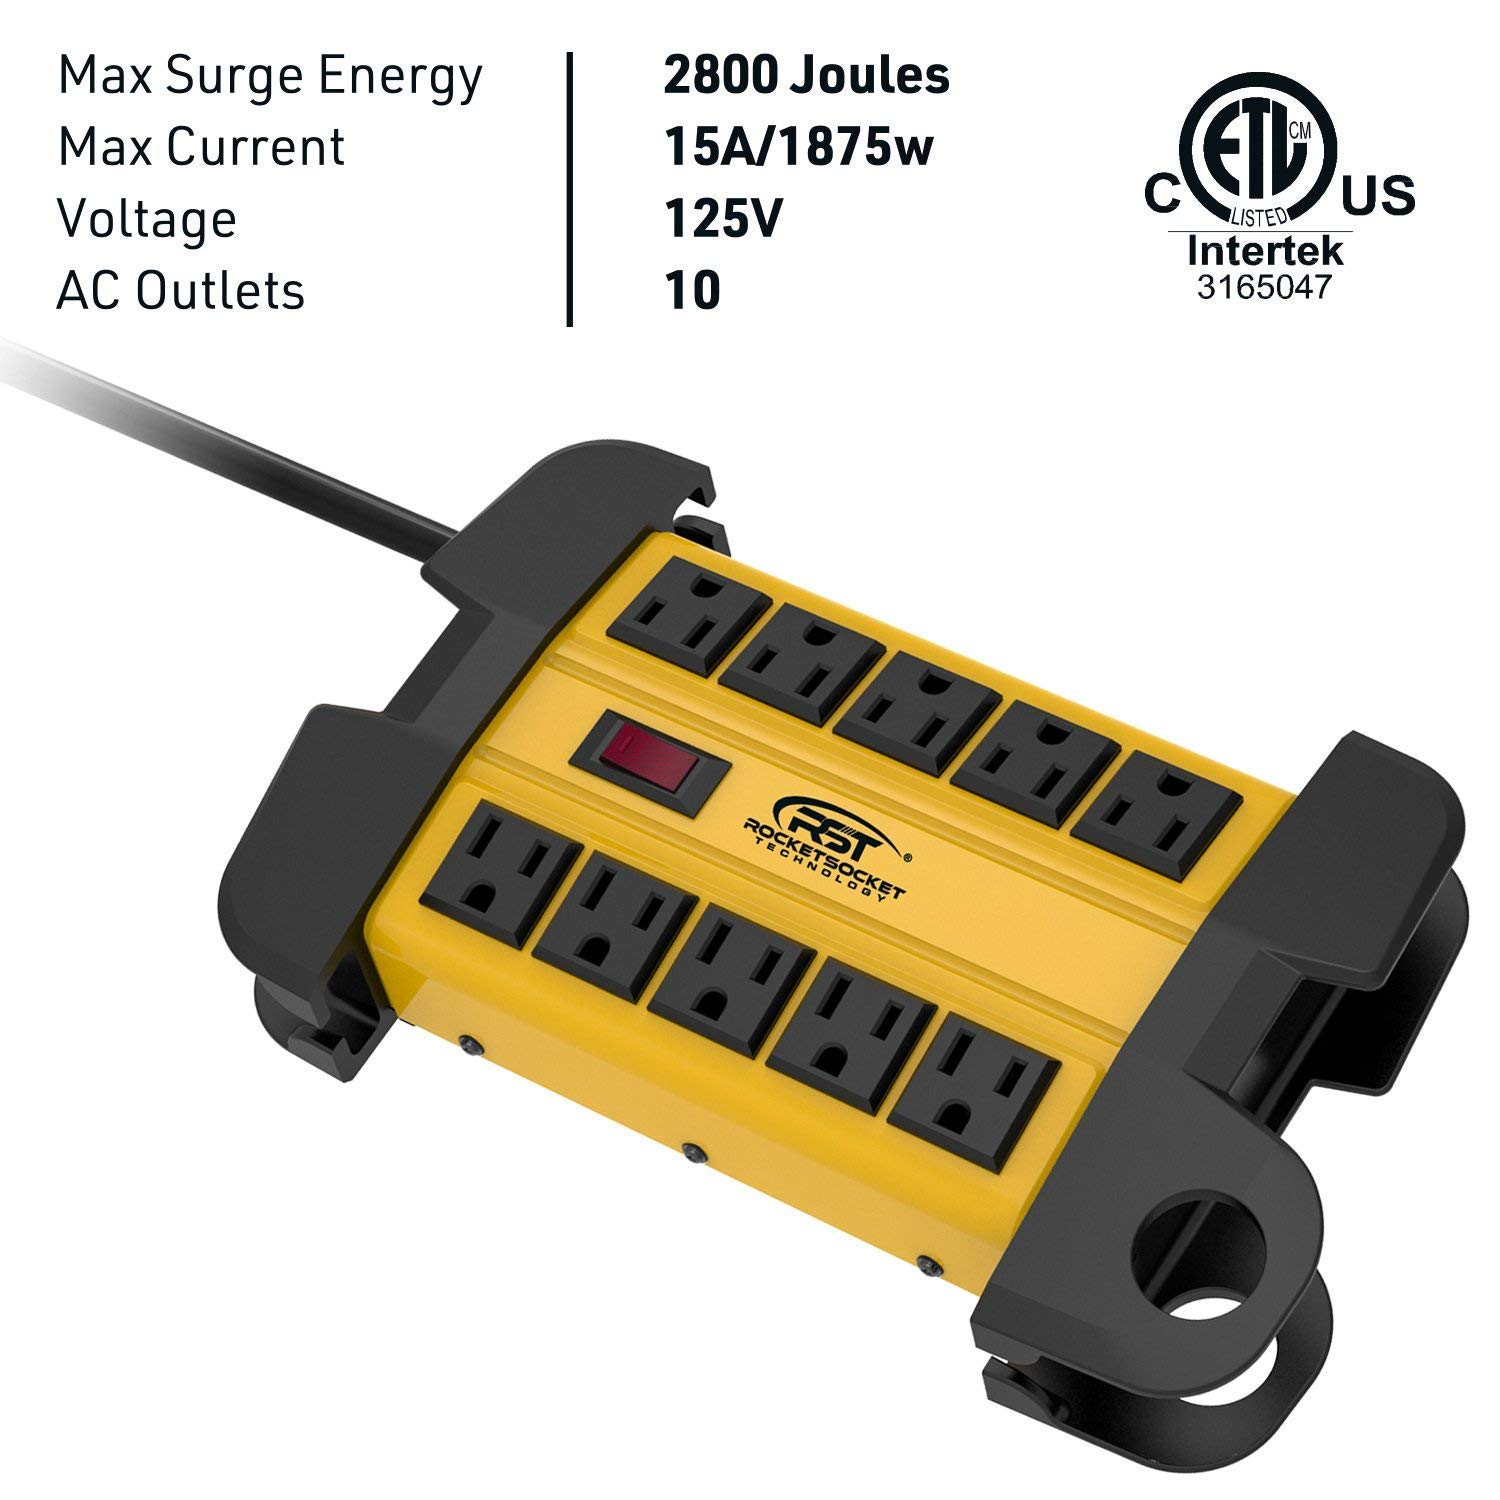 CRST 10-Outlets Heavy Duty Power Strip Metal Surge Protector with 15 Amps, 15-Foot Power Cord 2800 Joules for Garden, Kitchen, Office, School, ETL Listed 3165047 10-Outlet, Yellow